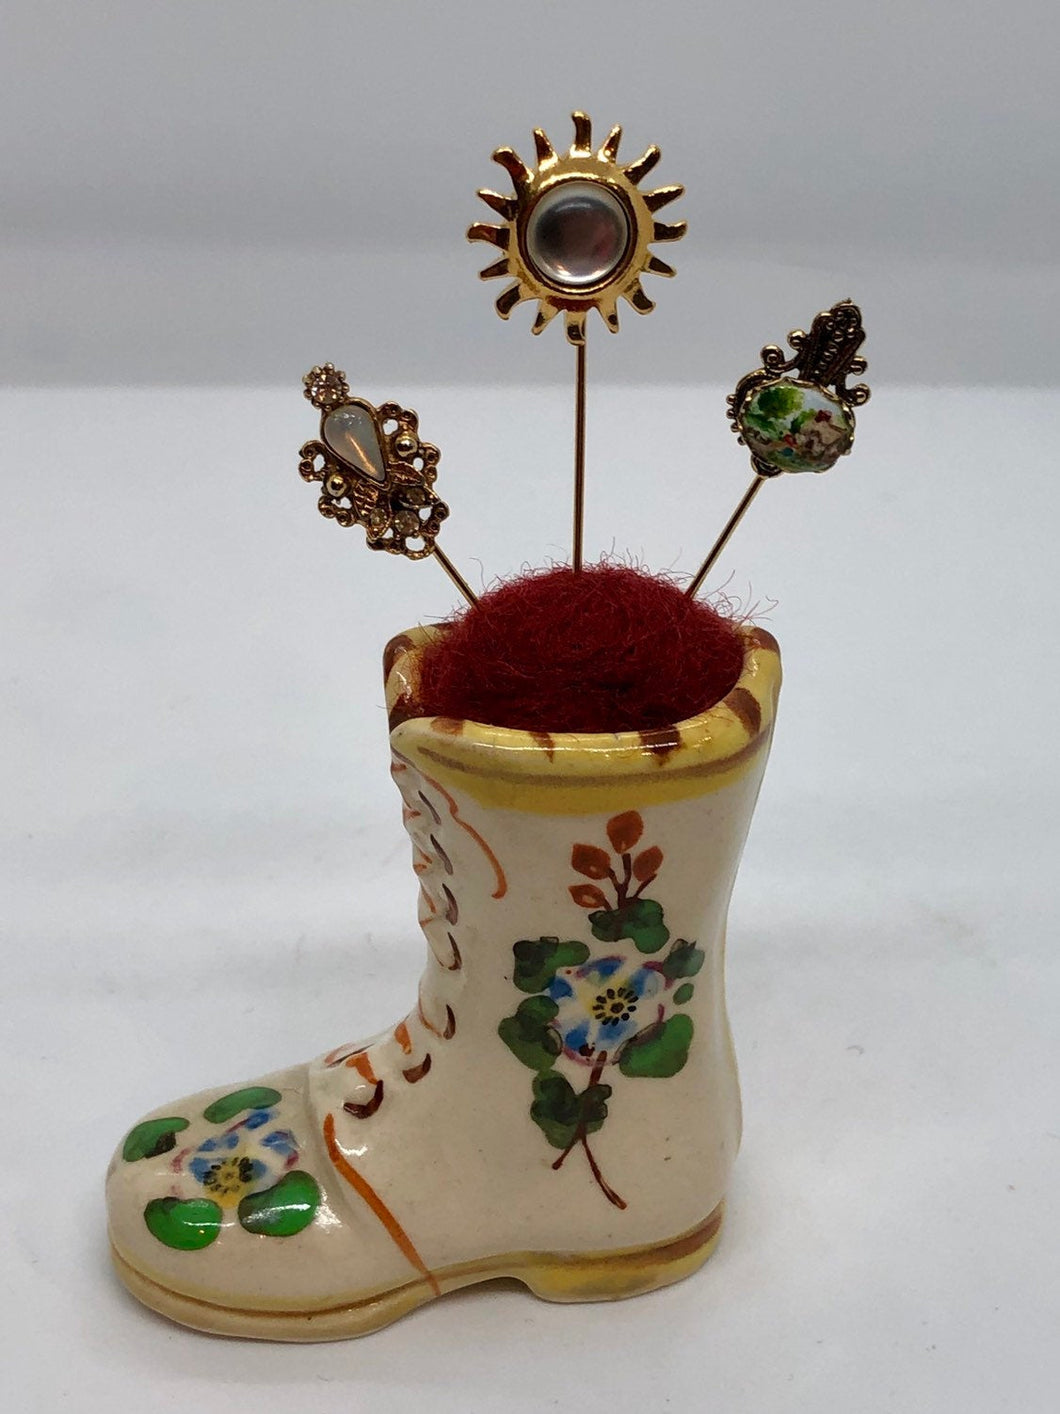 Vintage Miniature Ceramic Boot Repurposed as a Pincushion